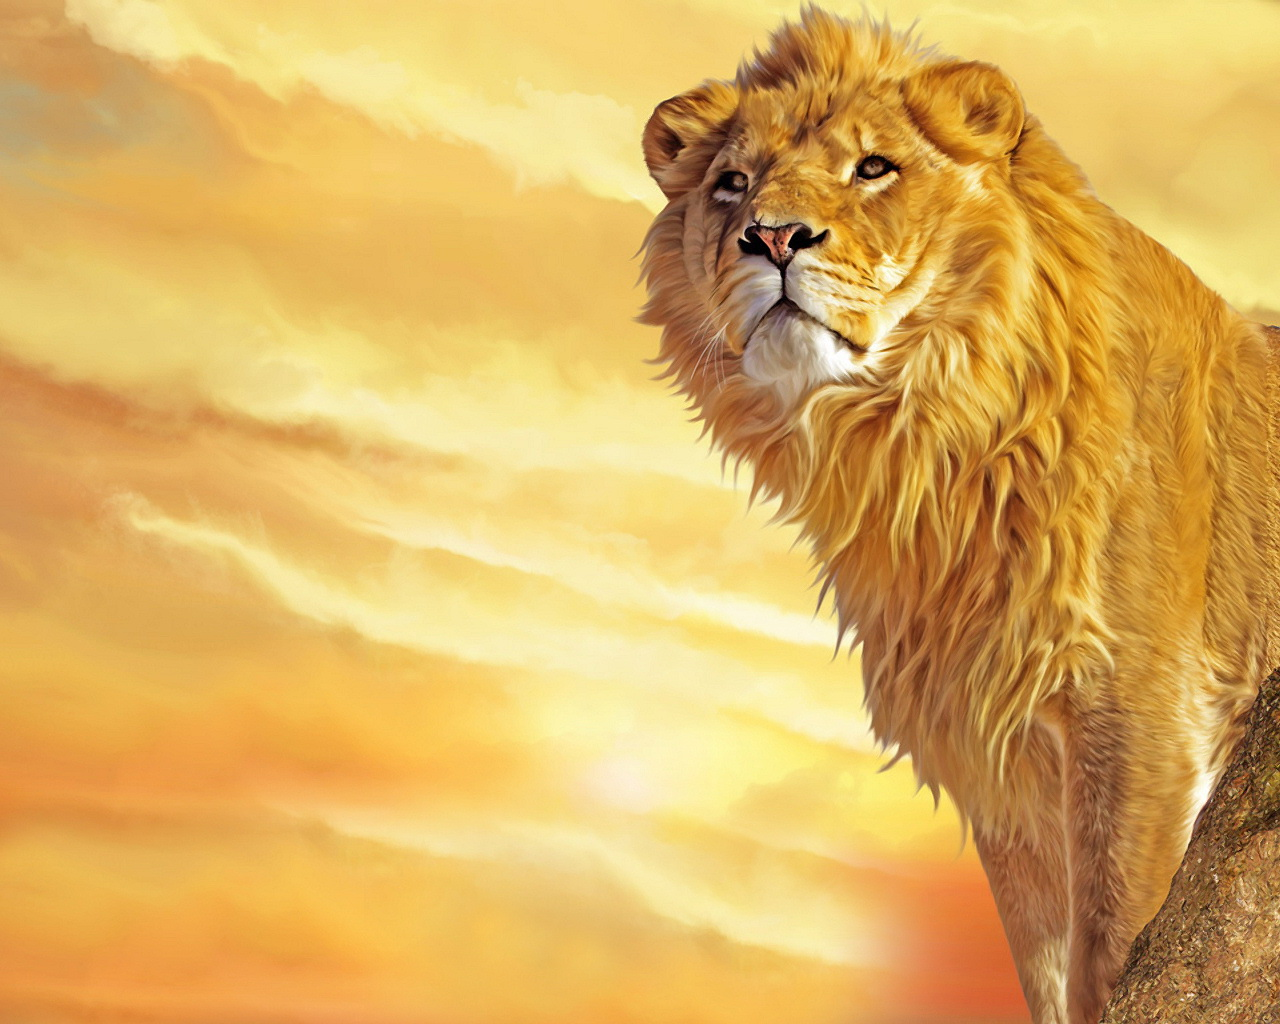 24 Lion Wallpapers For Desktop | Quotes Wallpapers